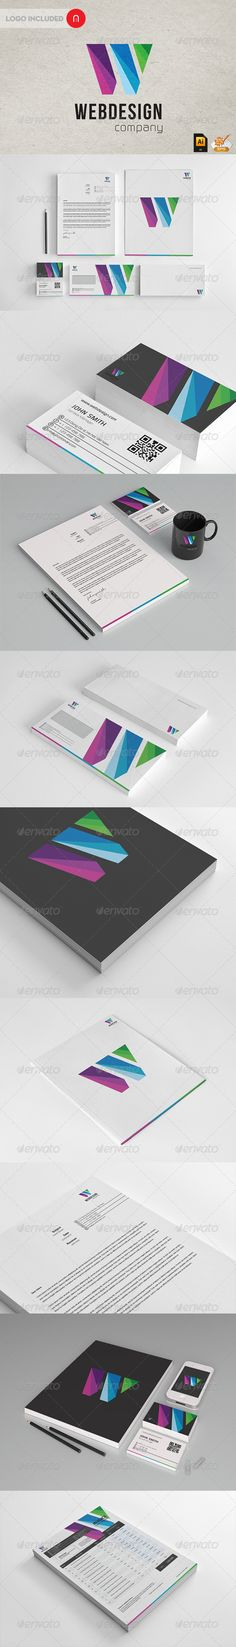 Wen Design - Modern Stationary + Invoice - GraphicRiver Item for Sale